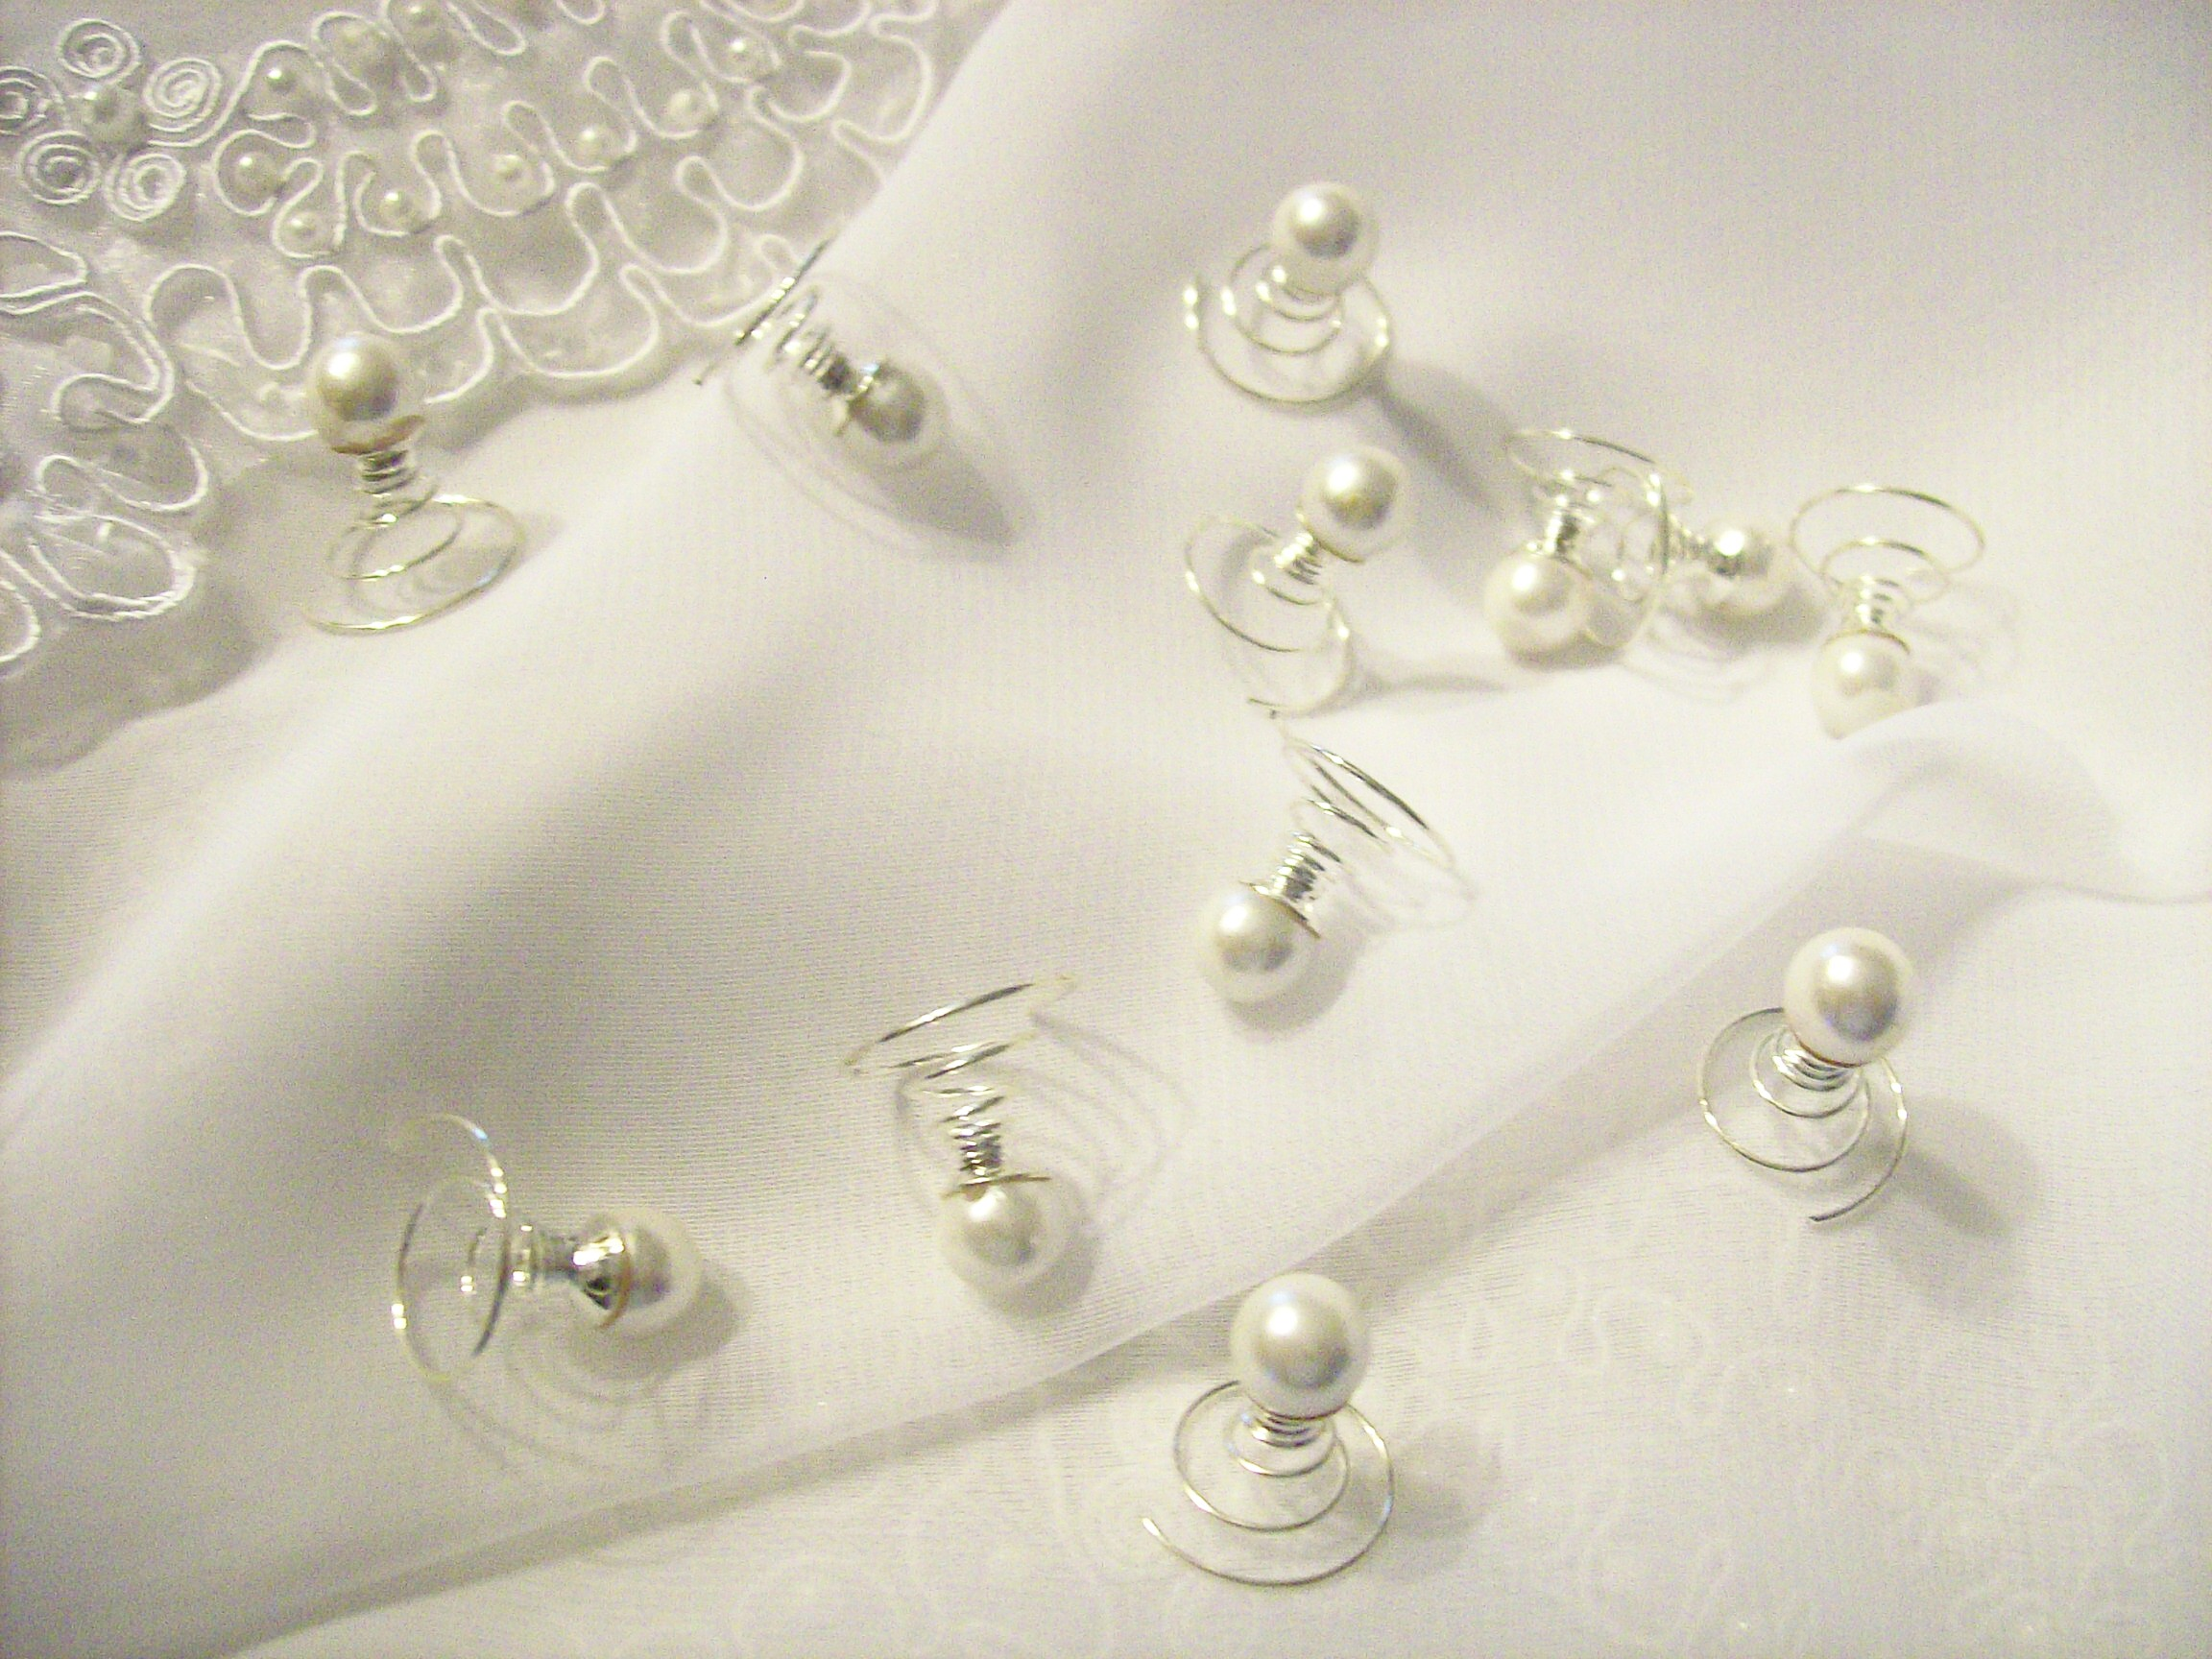 Pearl hair twists set of 12 hair spirals bridal hair for Where to buy wedding accessories